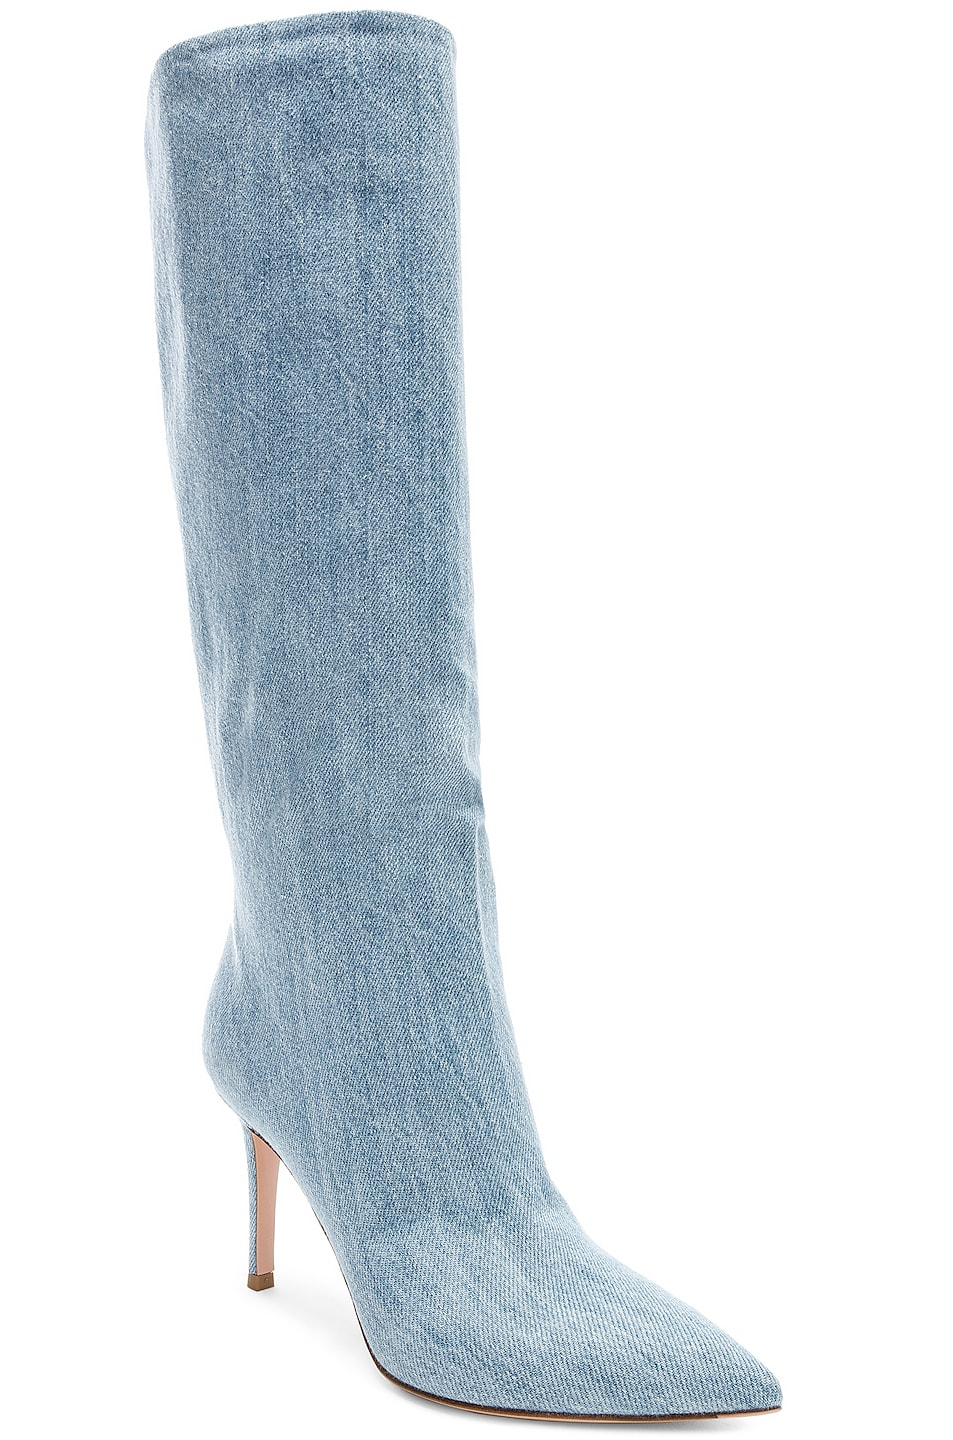 Image 2 of Gianvito Rossi Denim Boots in Stonewash